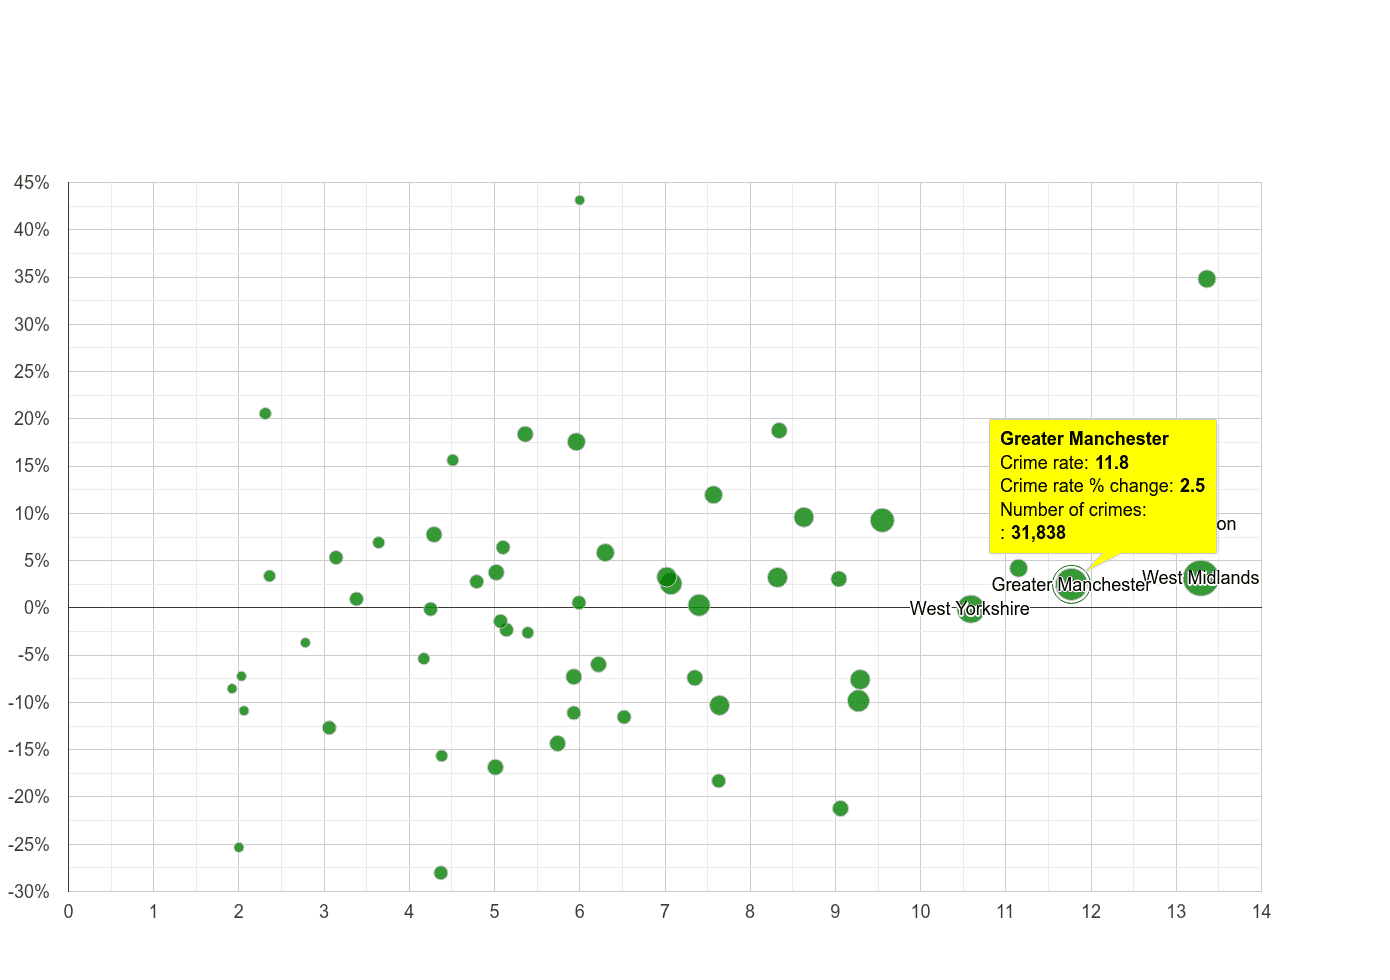 Greater Manchester vehicle crime rate compared to other counties